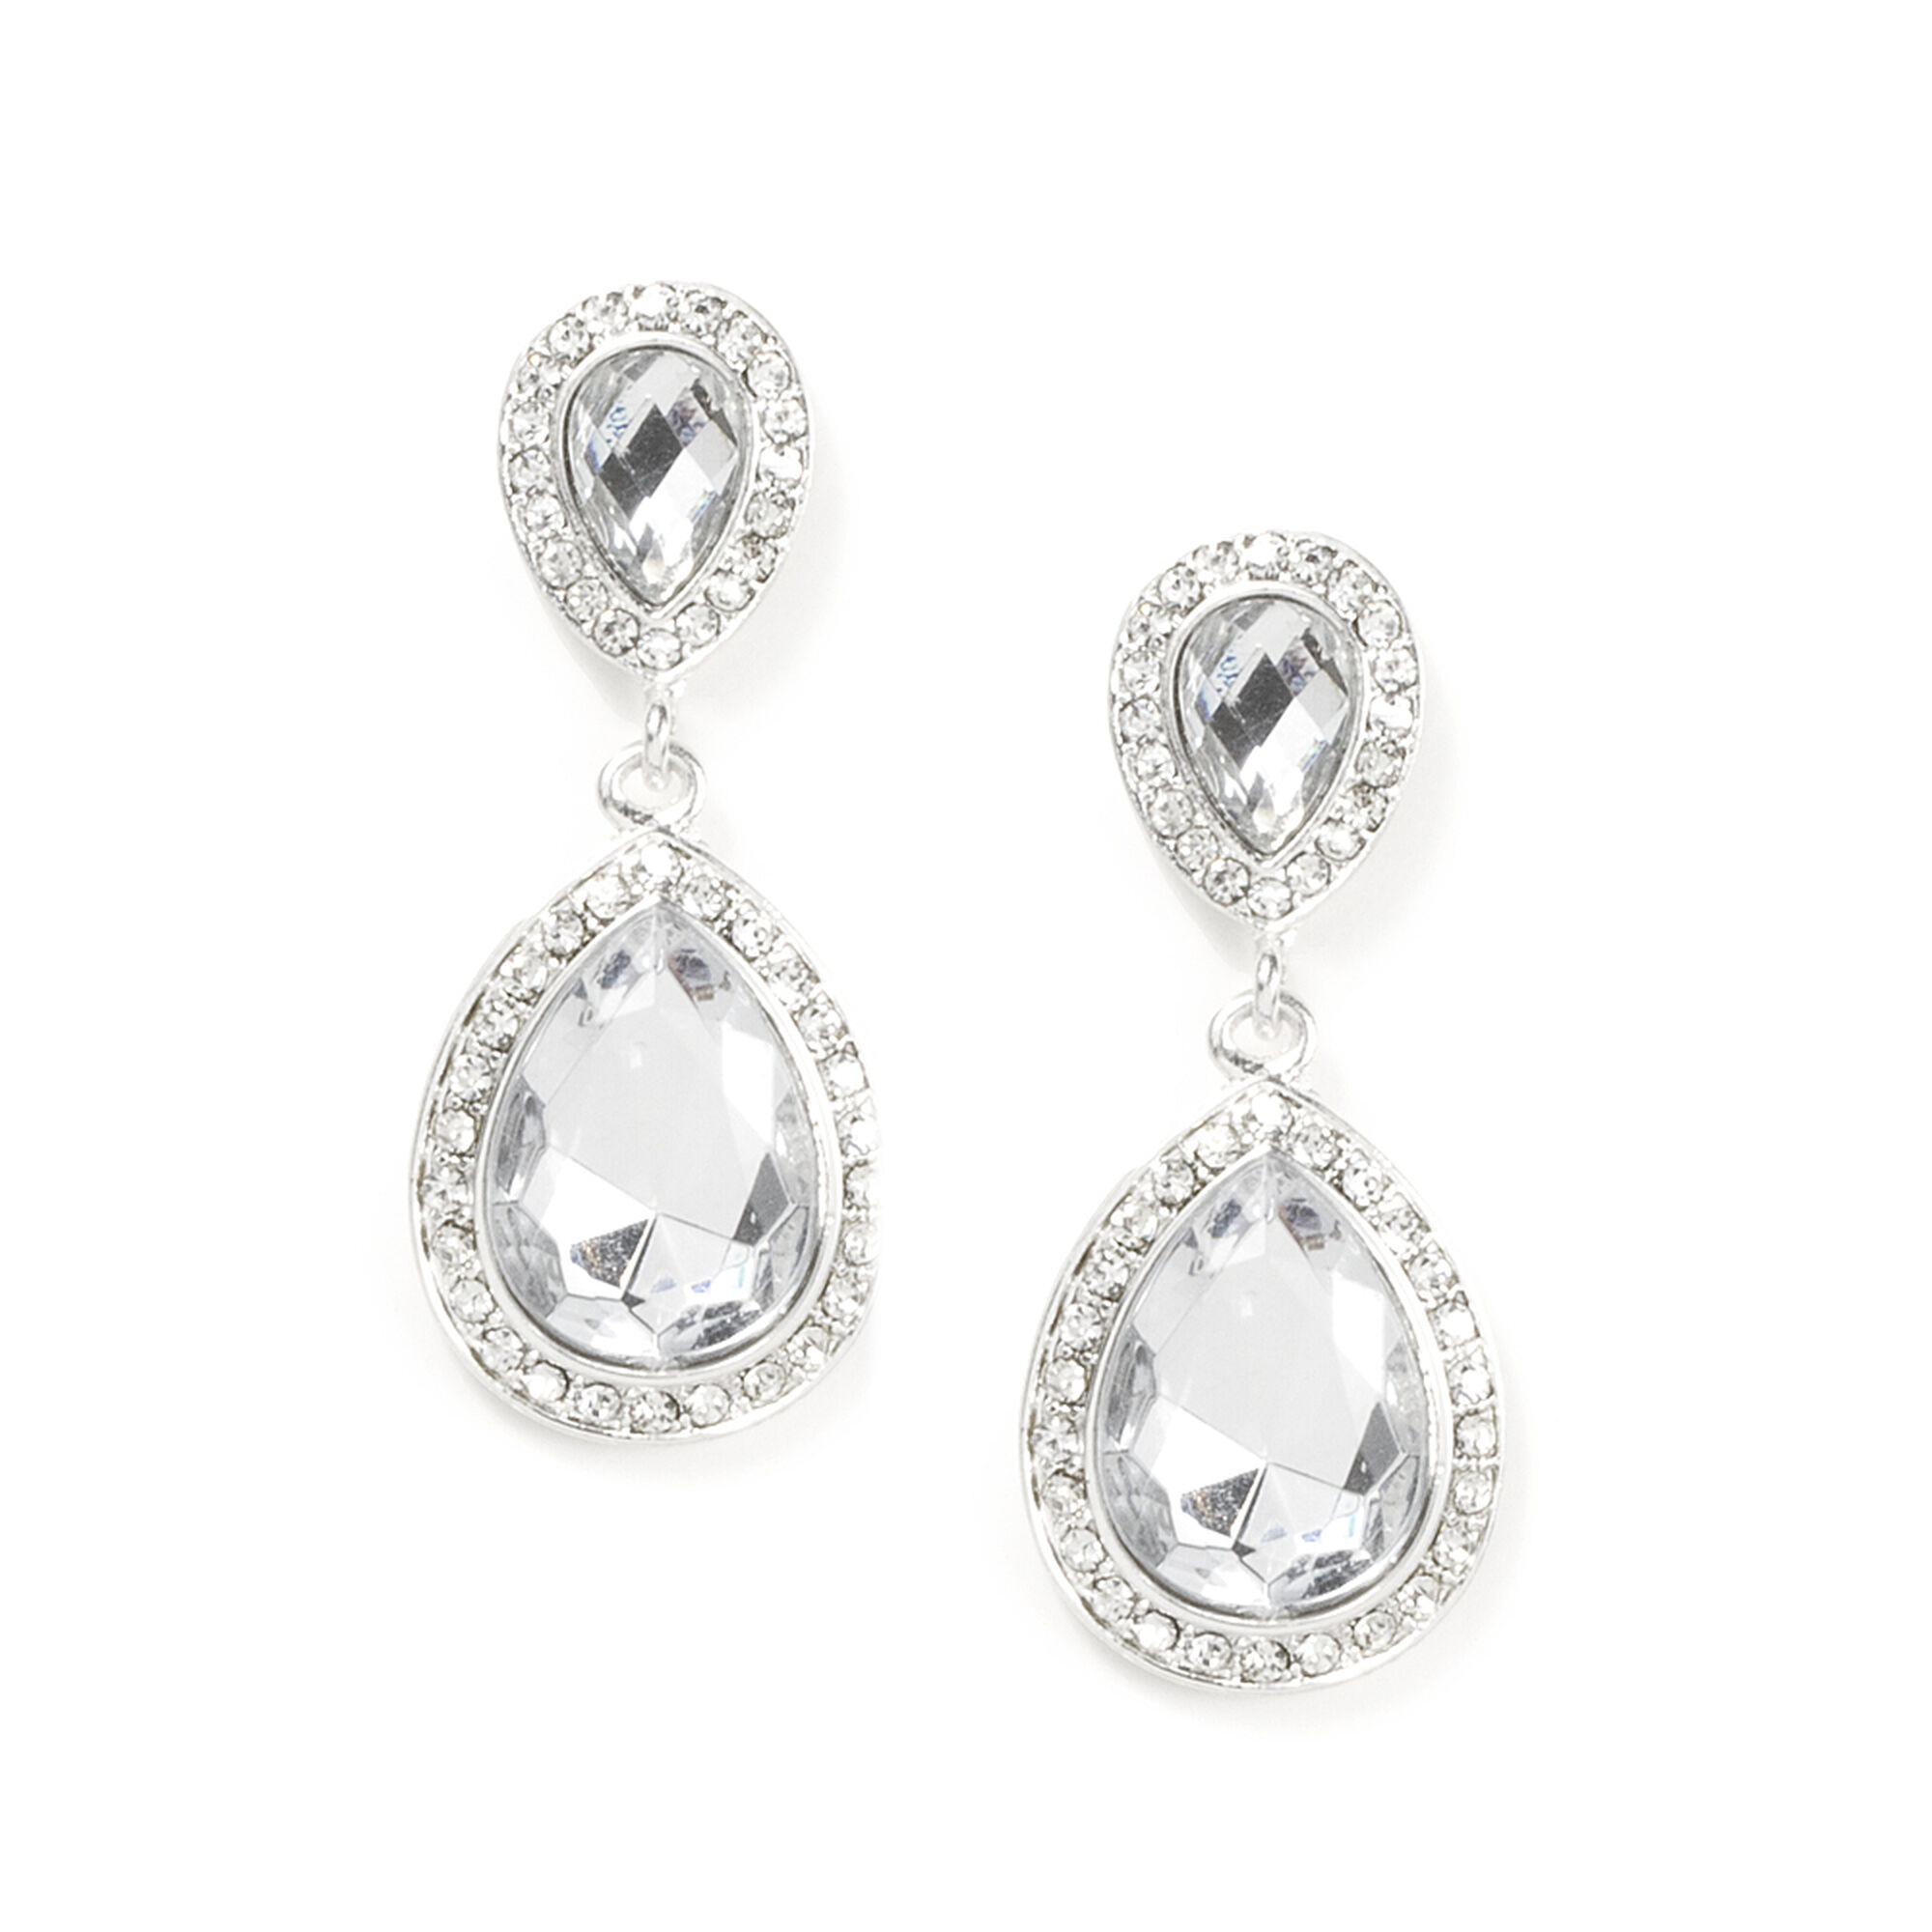 product jewelry monarch favorite starburst collection luxury drop fallon earrings celebrity rhodium designer pearl